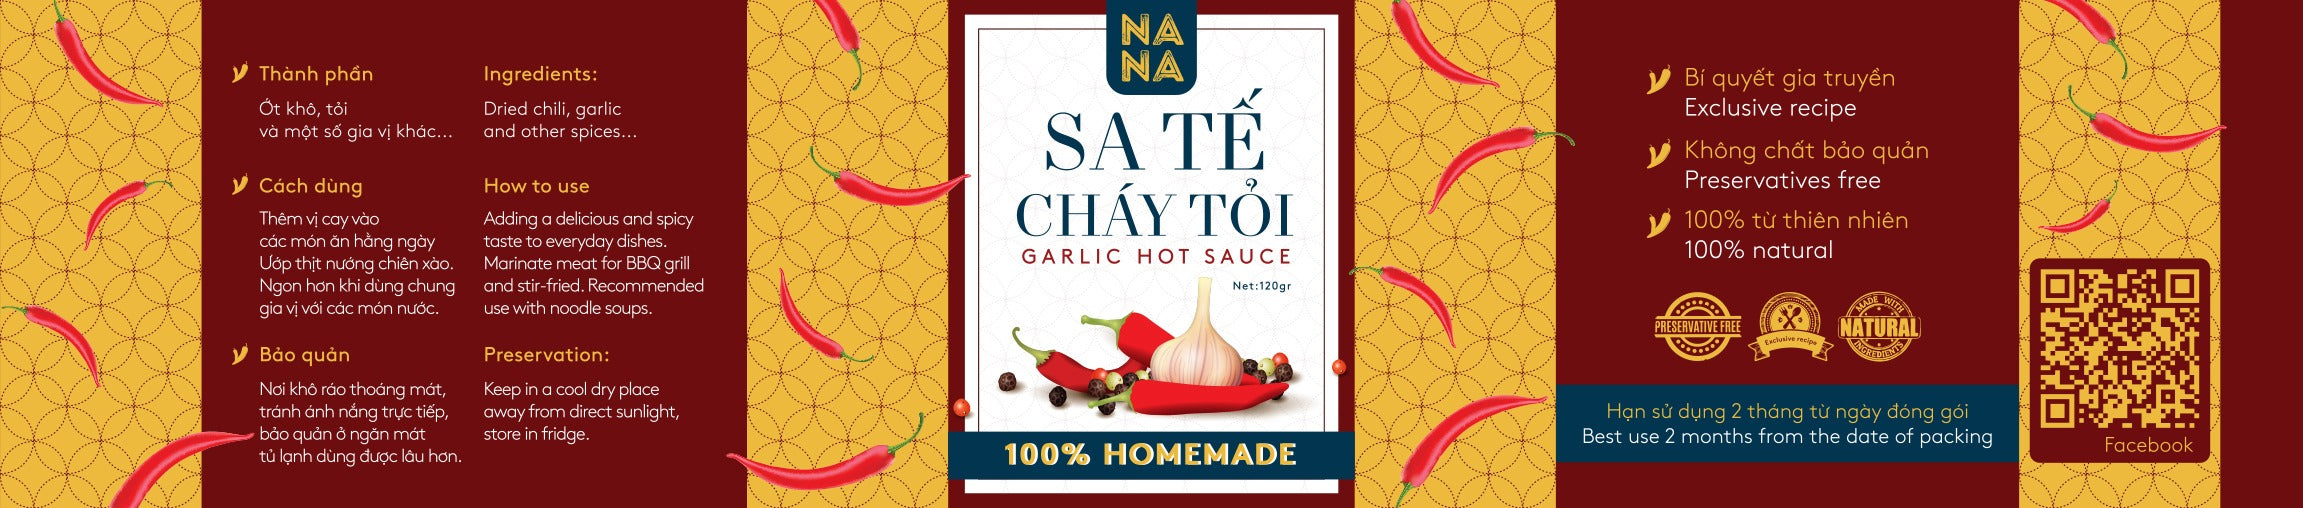 NANA GARLIC HOT SAUCE 100% HOMEMADE (120g) - COMBO 2 PACK